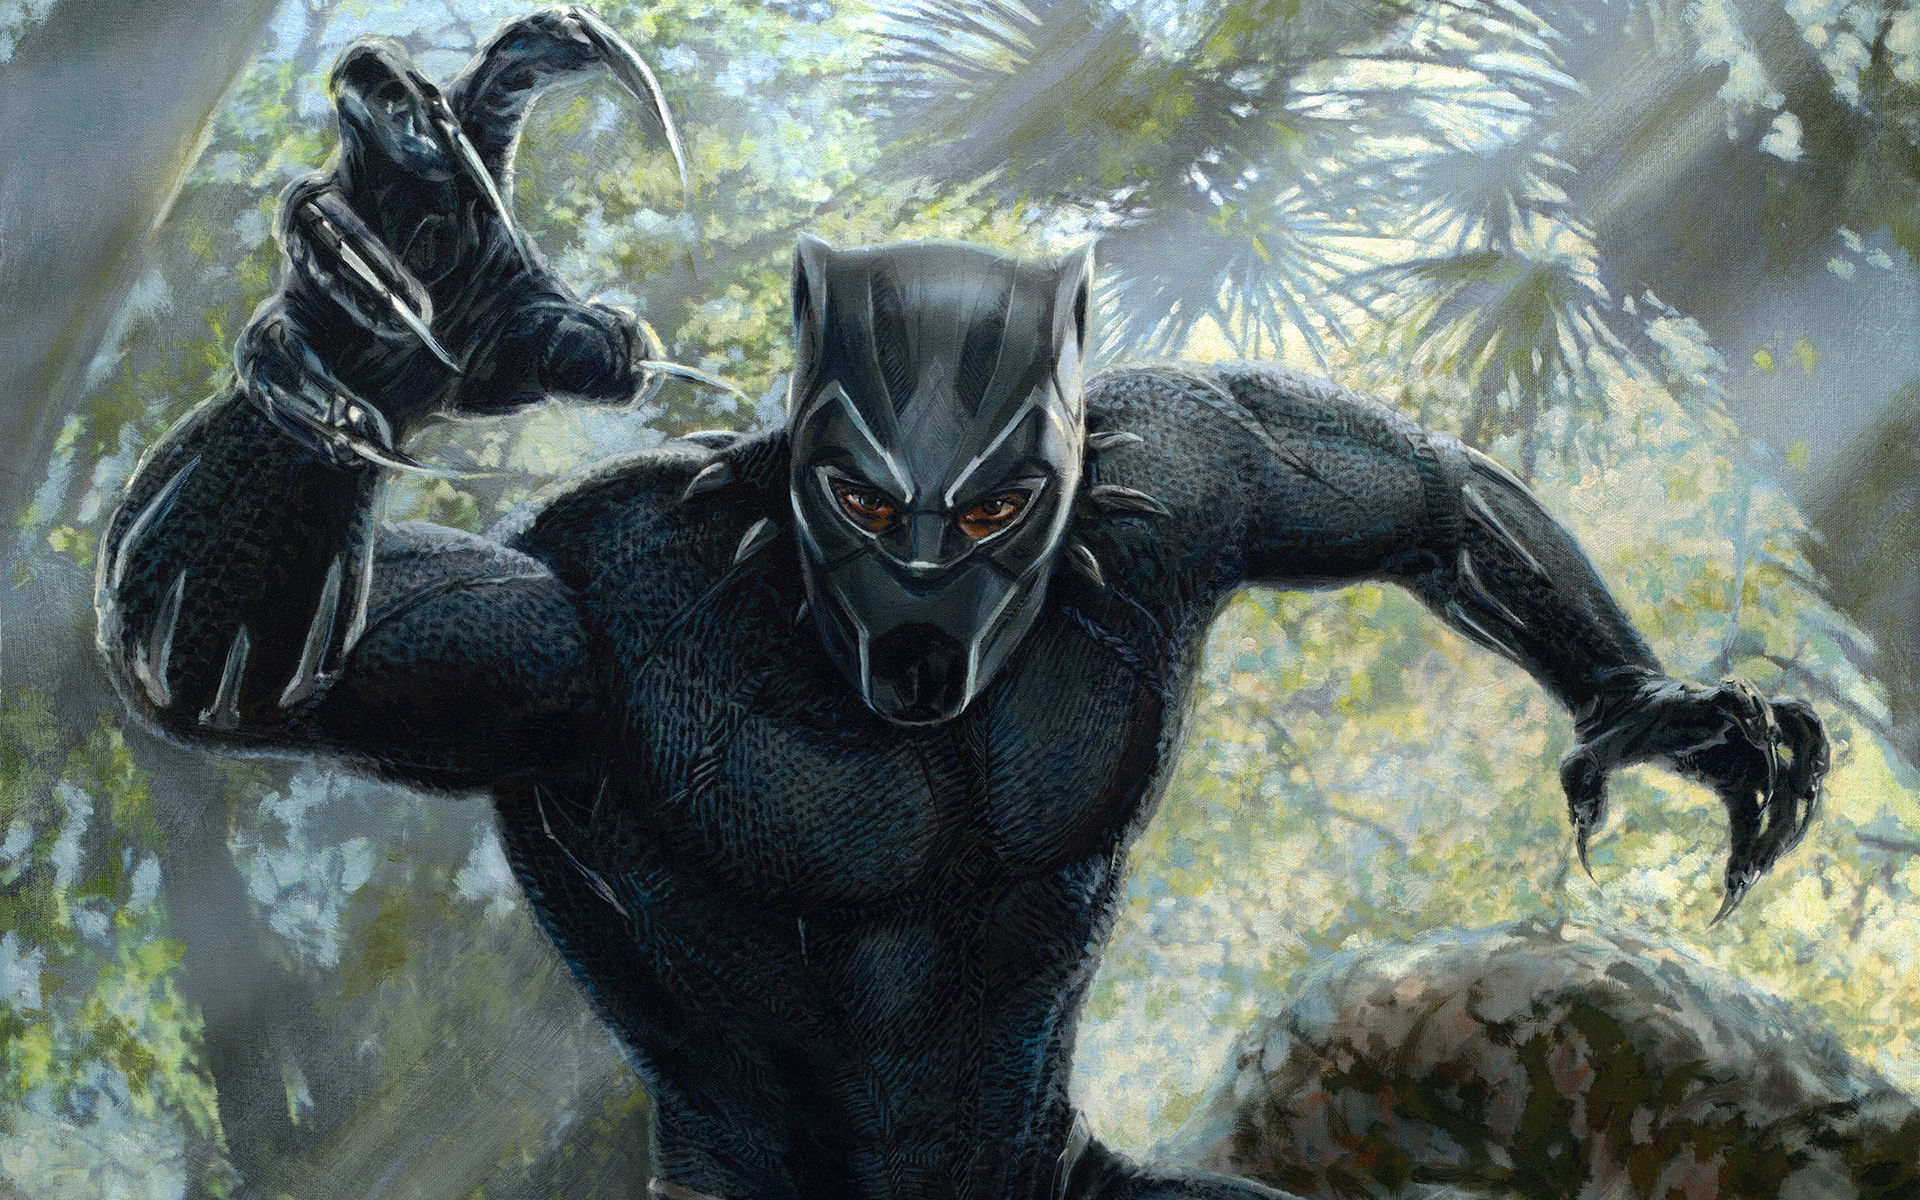 Black Panther 2018 Movie Still Full Hd Wallpaper: 1920x1080 Black Panther 2018 Movie Artwork Laptop Full HD